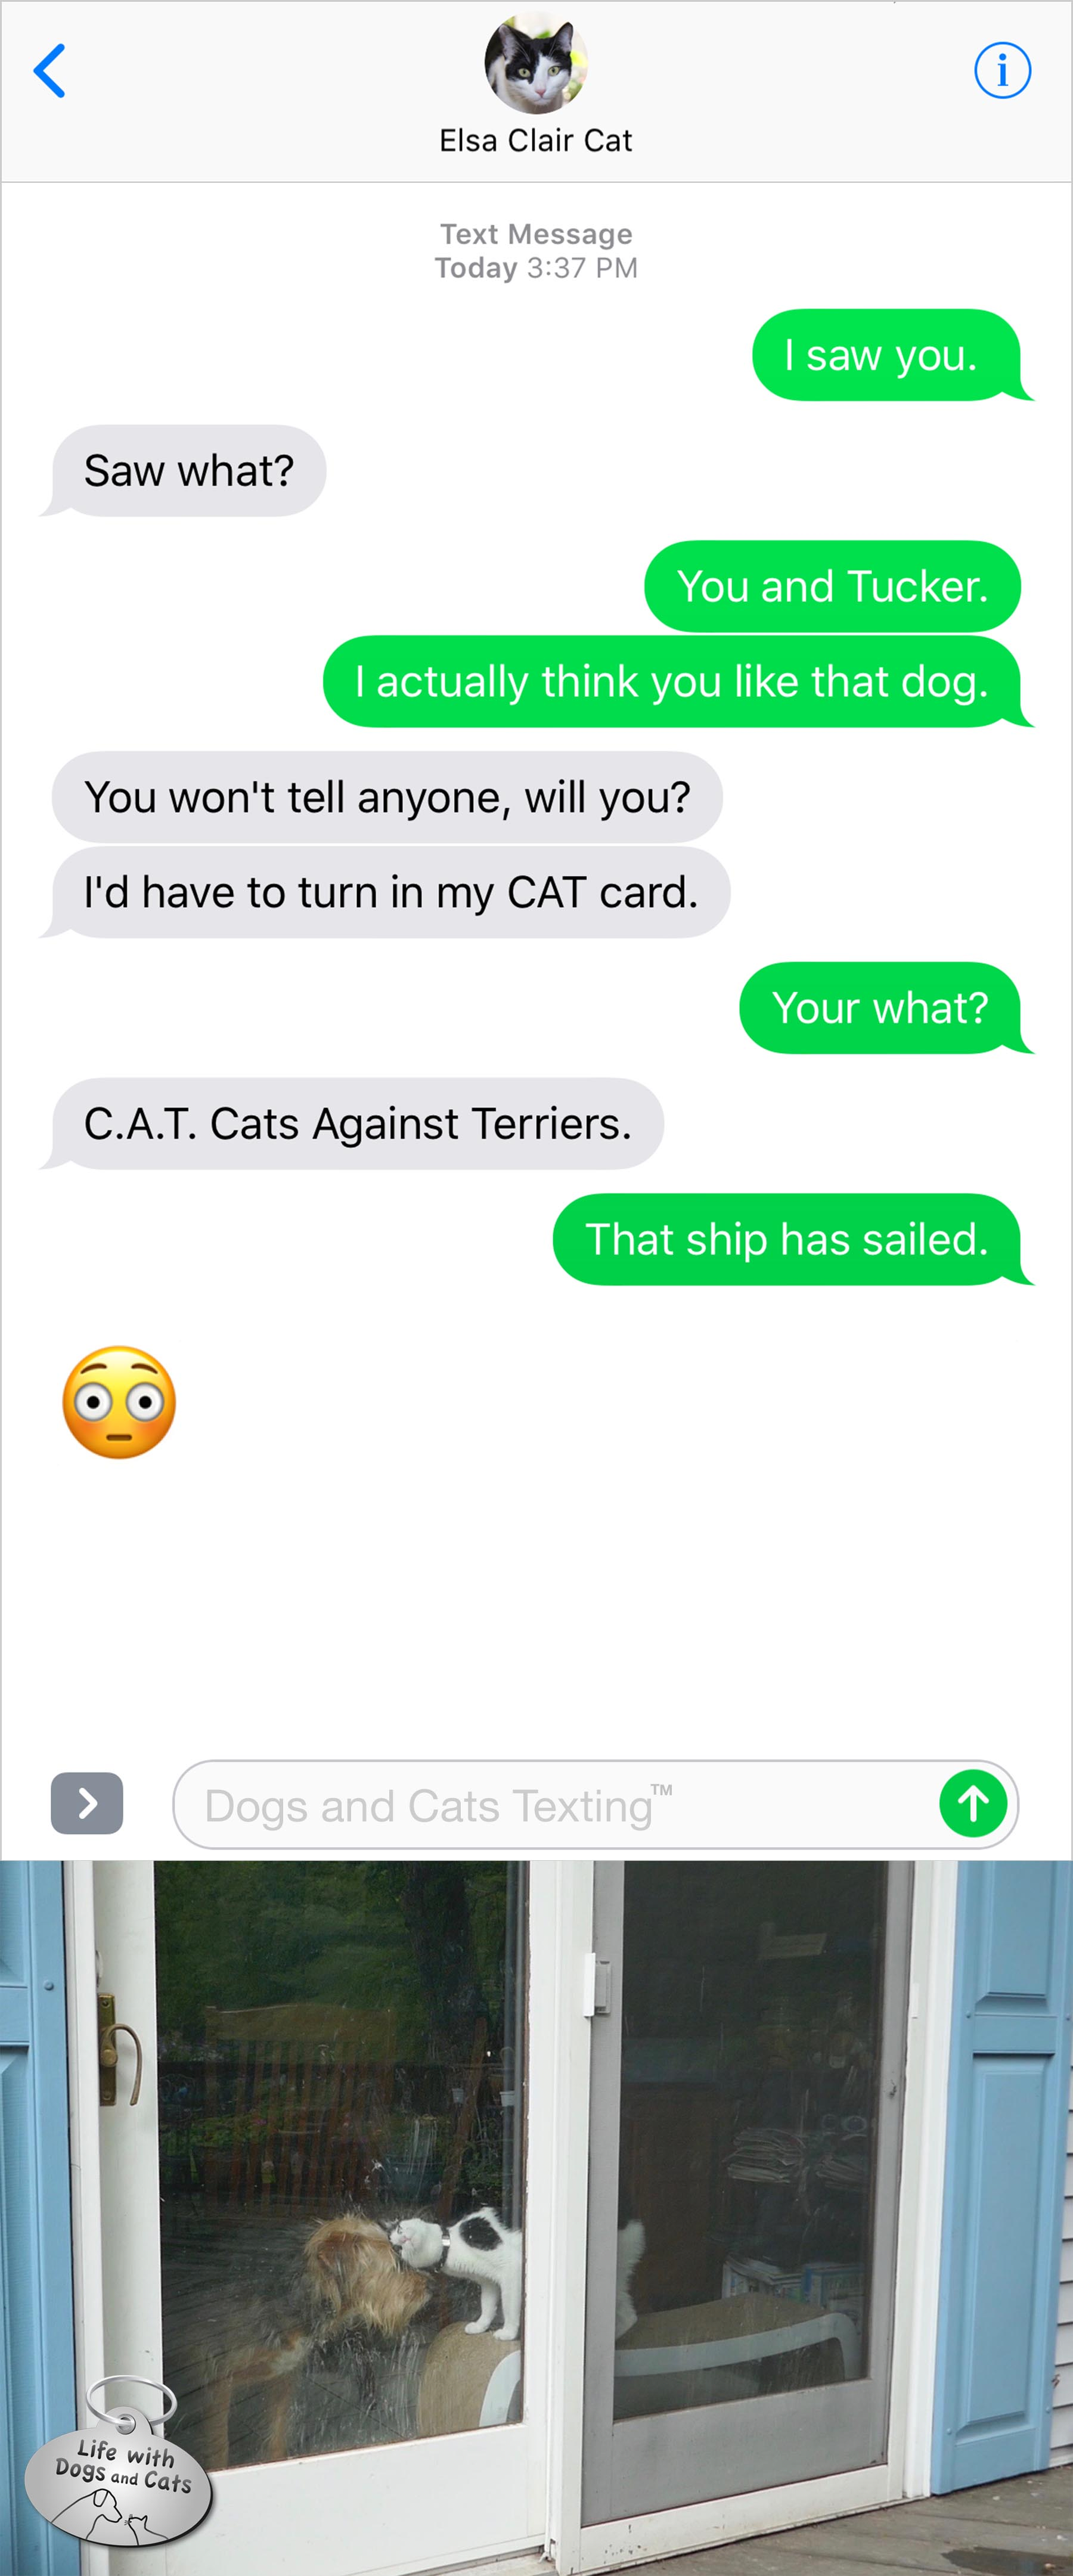 #TextFromCat Me: I saw you. Cat: Saw what? Me: You and Tucker. I actually think you like that dog. Cat: You won't tell anyone, will you? I'd have to turn in my CAT card. Me: Your what? Cat: C.A.T. Cats Against Terriers.